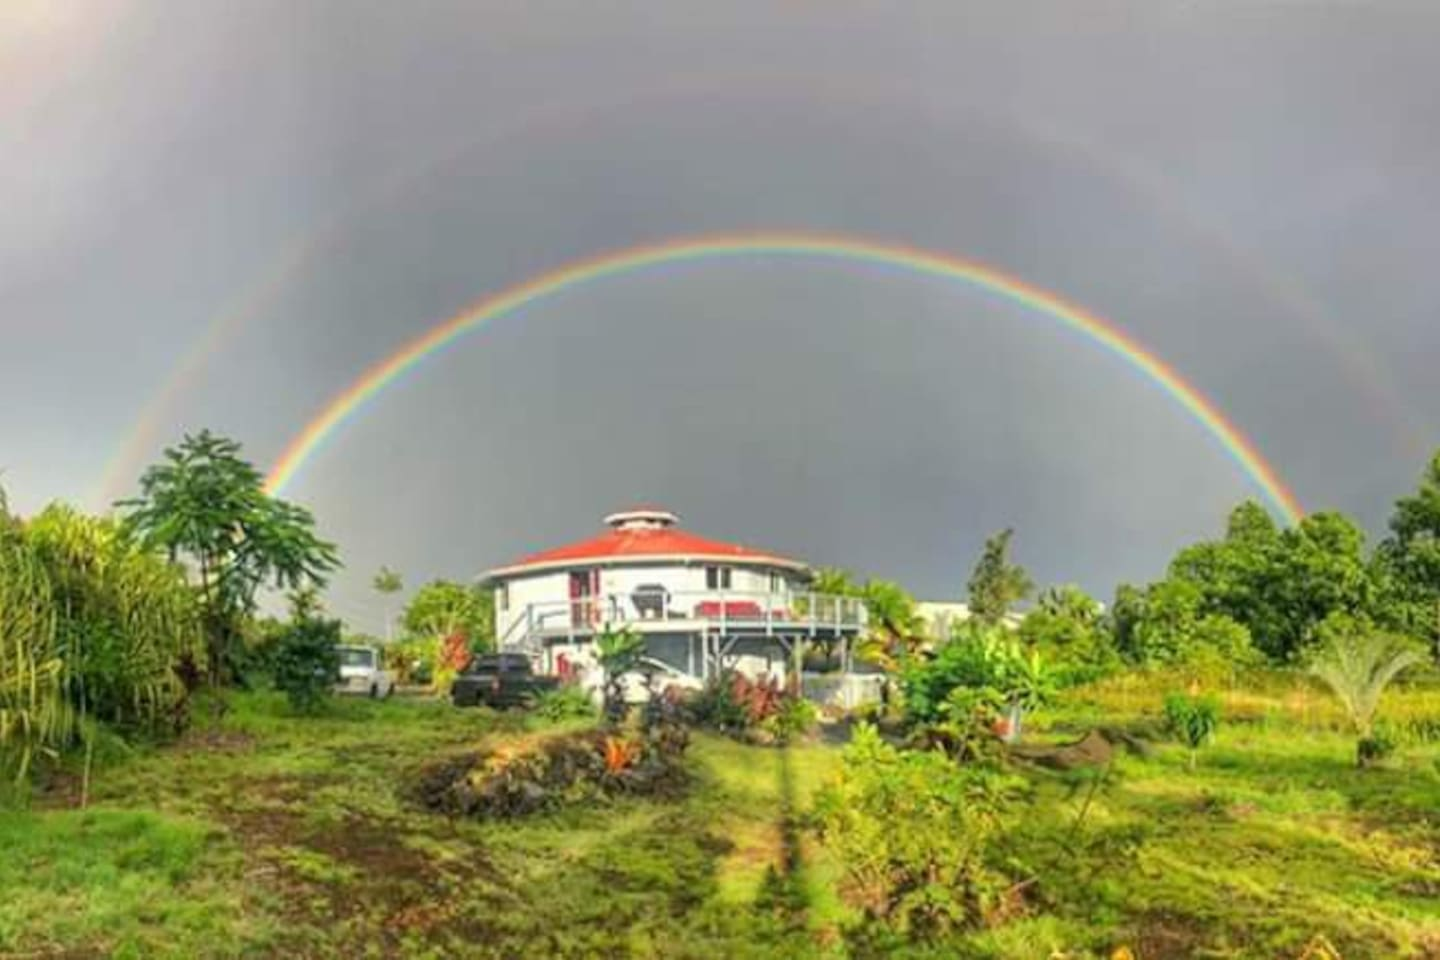 The double rainbow blesses this 16 sided custom designed home